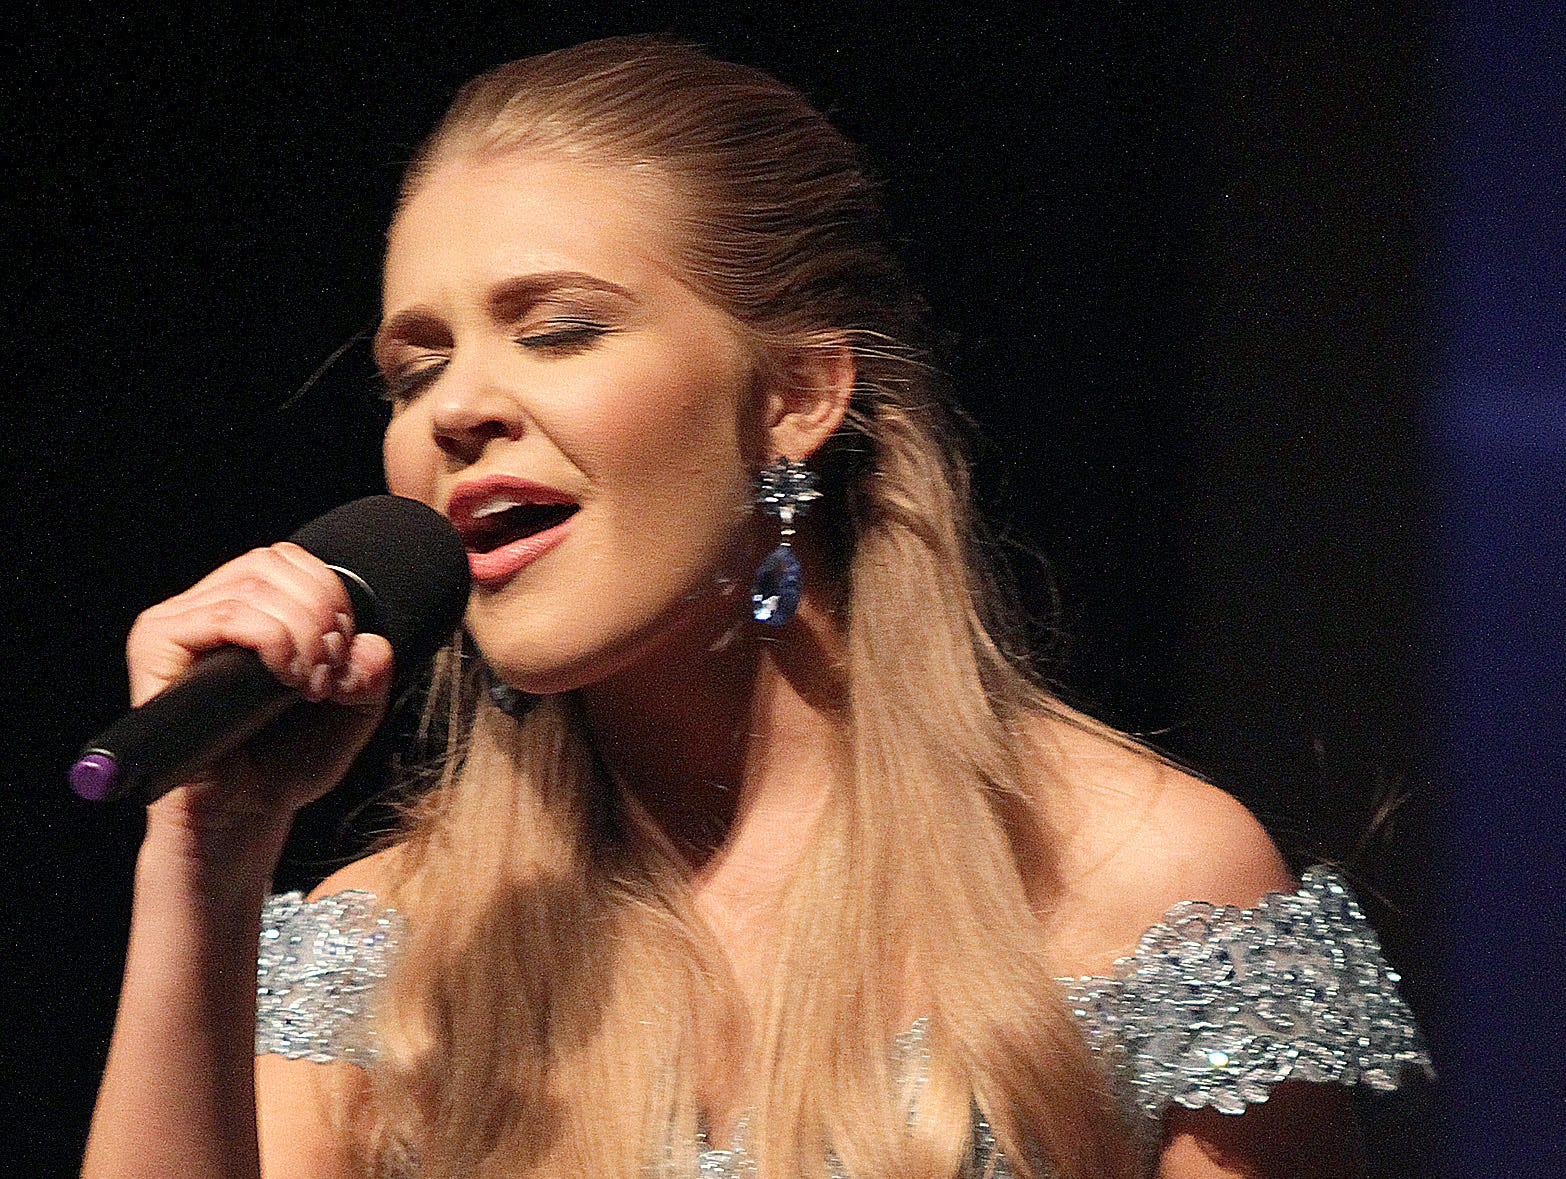 Chloe Warren sings at Miss Tennessee's Outstanding Teen Pageant in Gallatin, TN on Saturday, March 30, 2019.